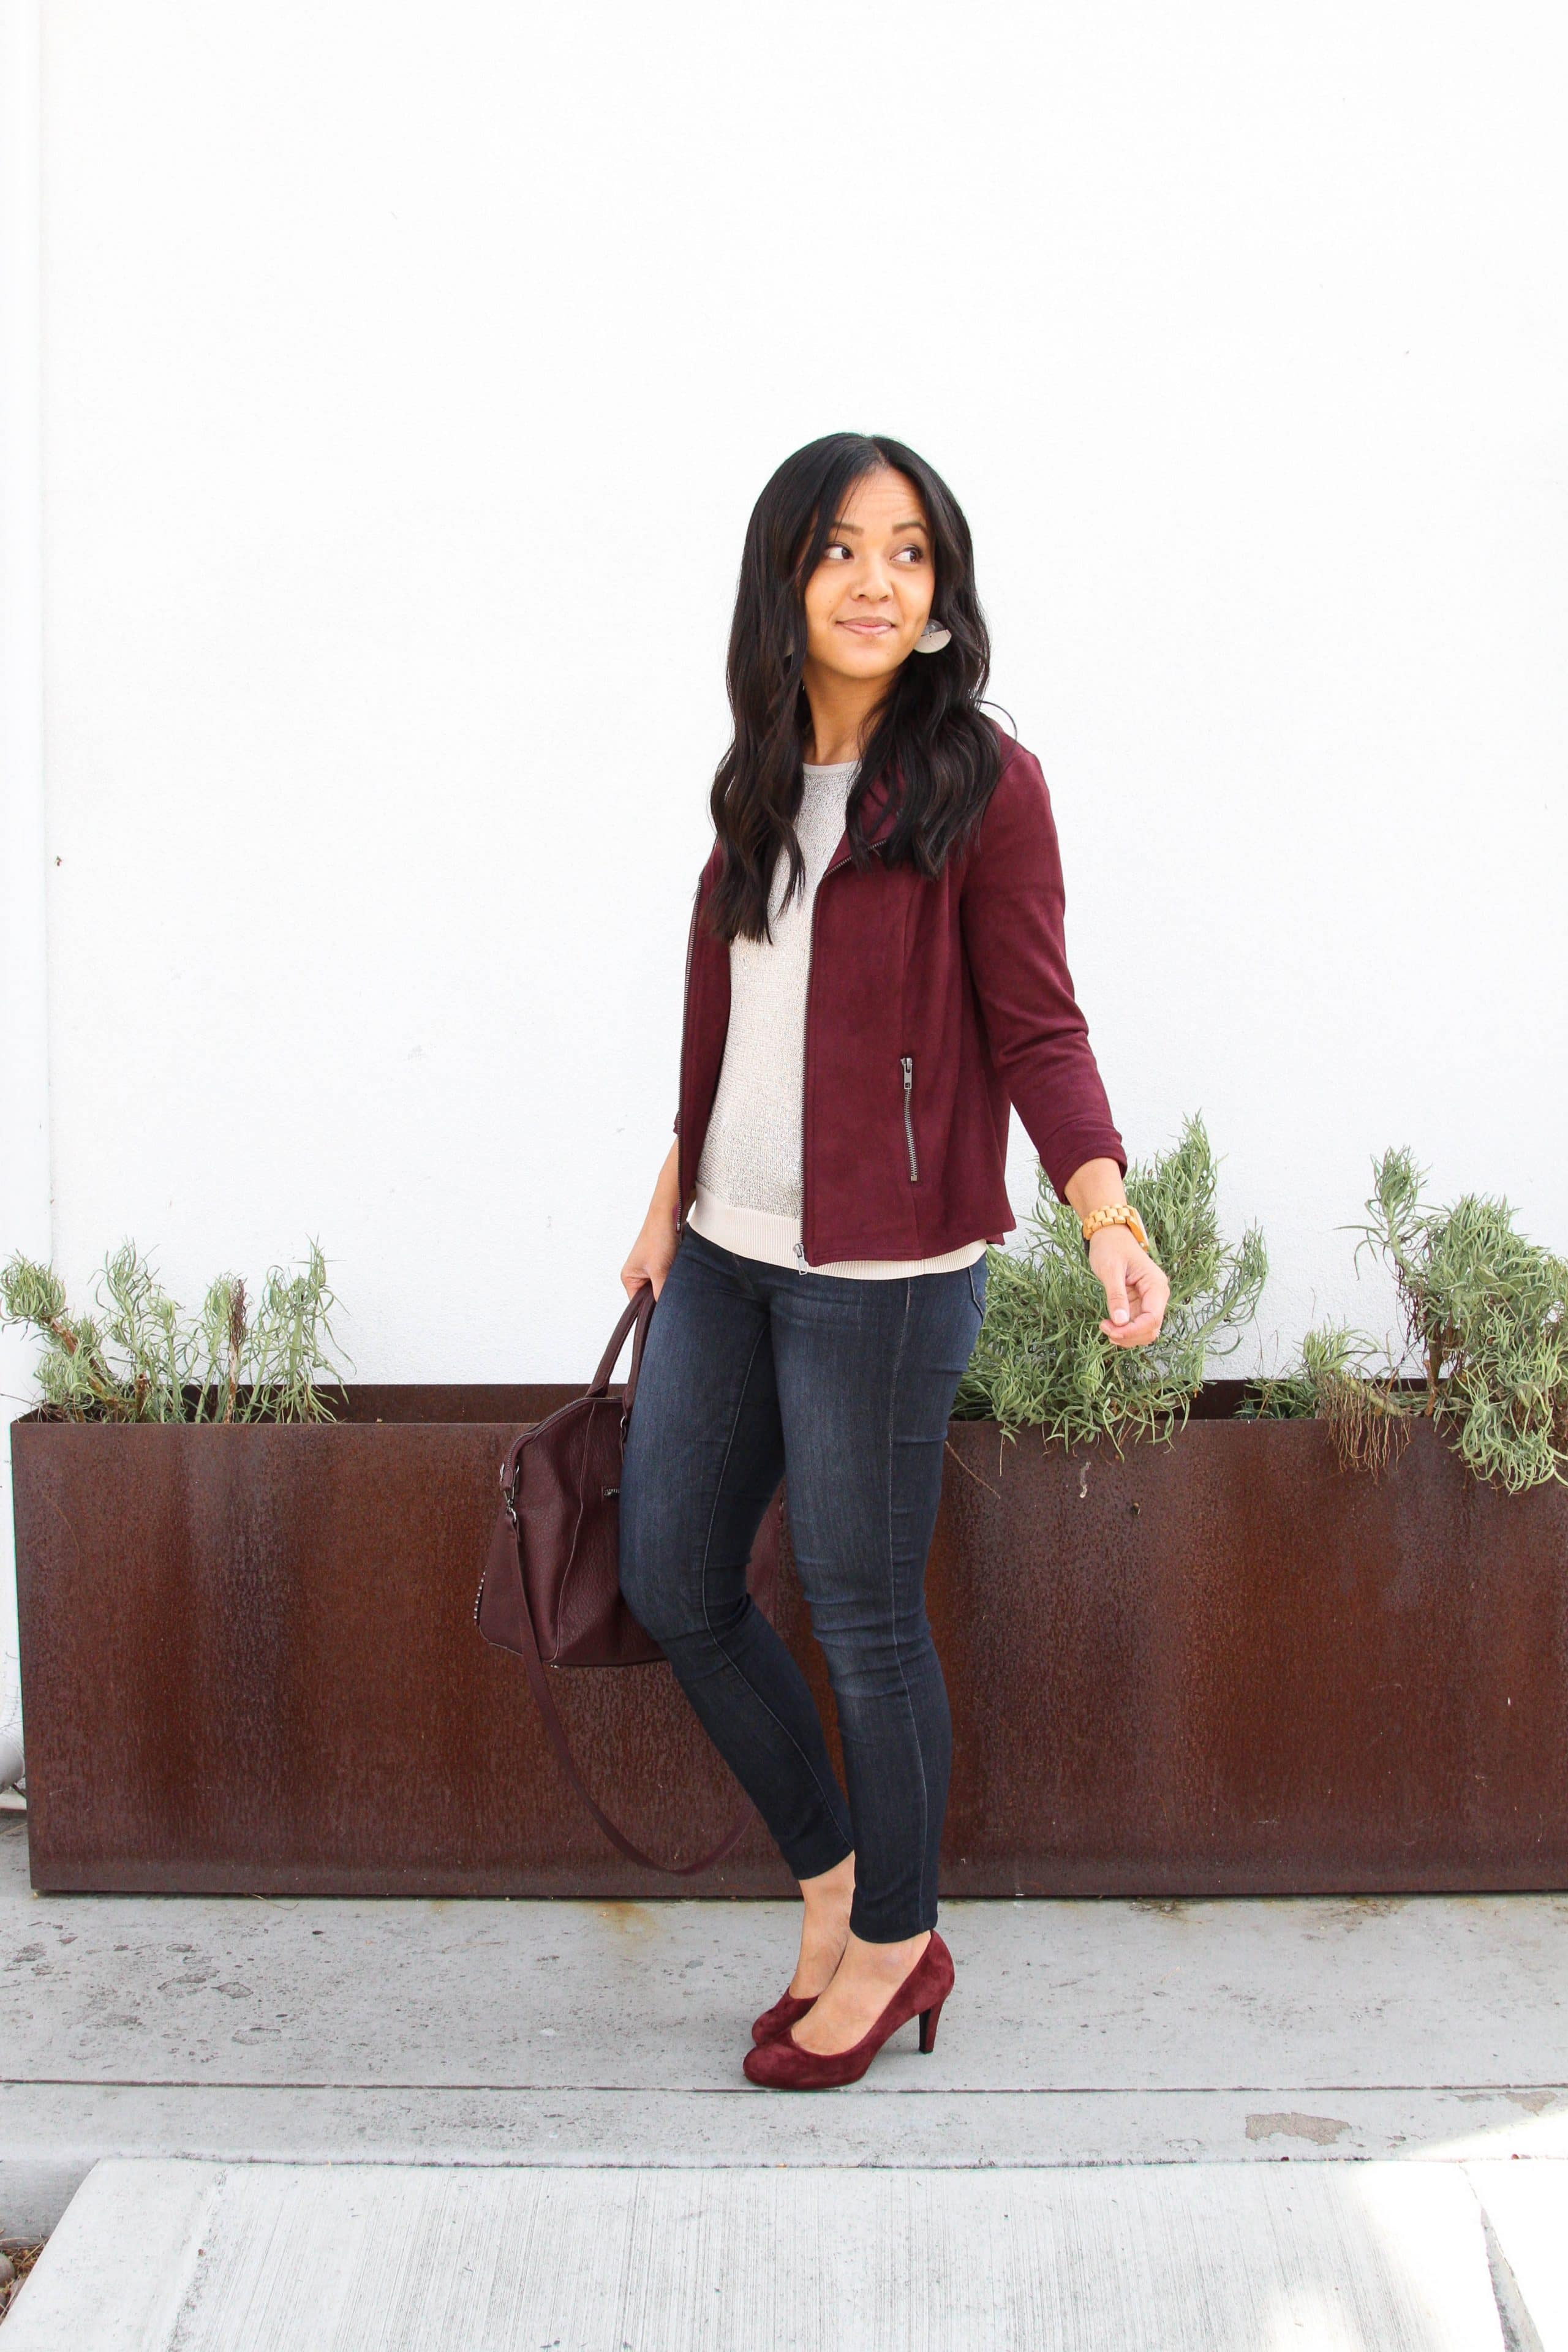 skinny jeans + cream sequin top + maroon moto jacket + maroon heels + maroon bag